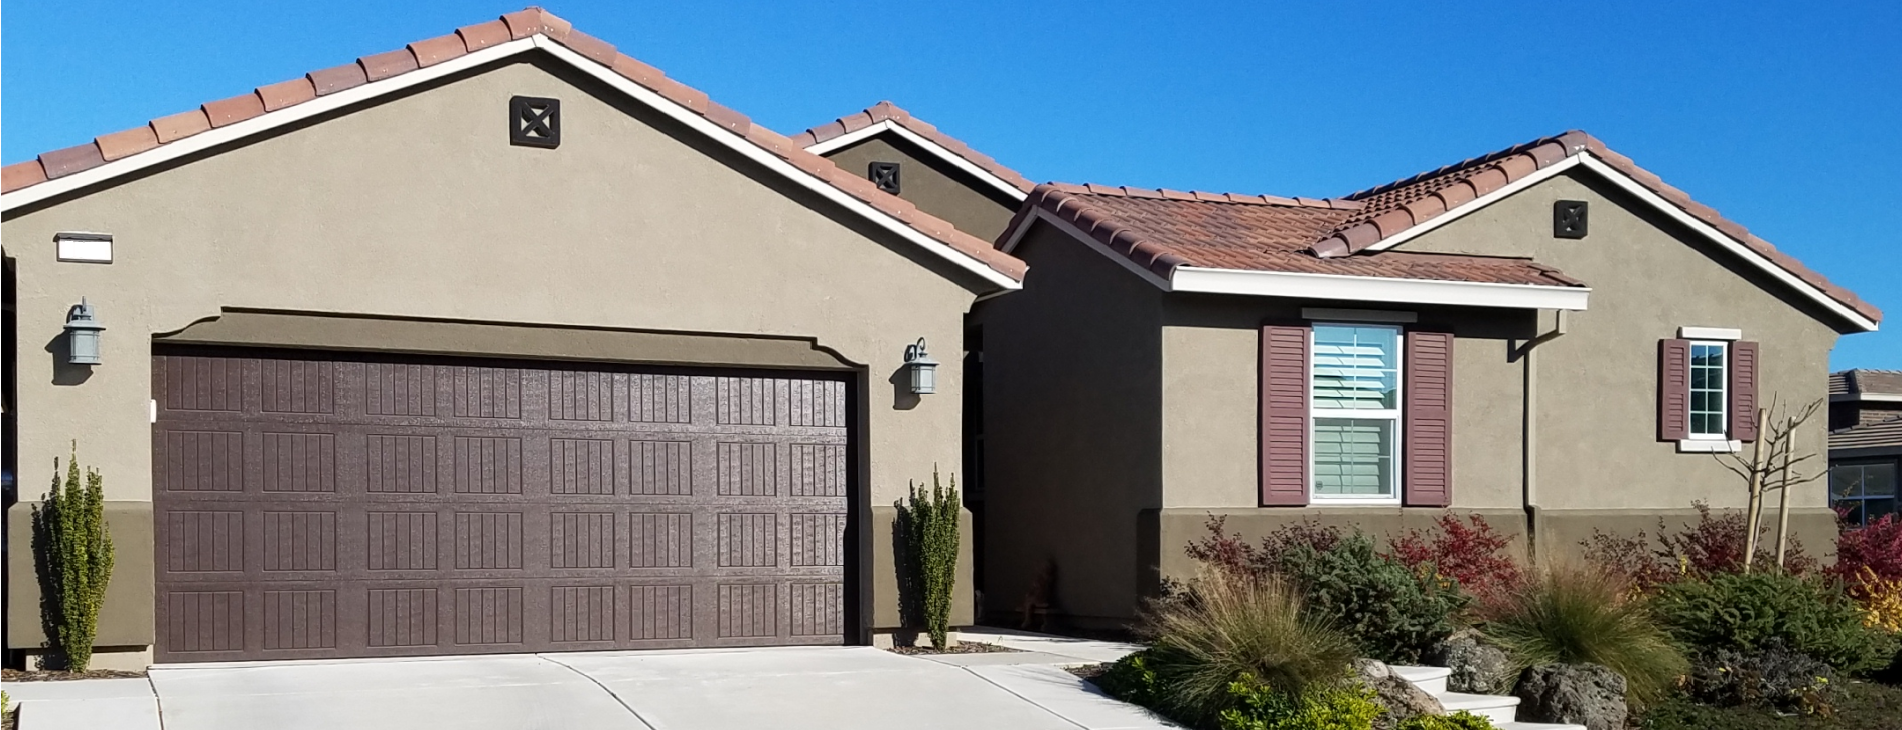 El Dorado Hills Painting. Residential, Commercial, Industrial Painter.  Interior painting, Exterior painting. Professional Painter in El Dorado Hills and the surrounding area